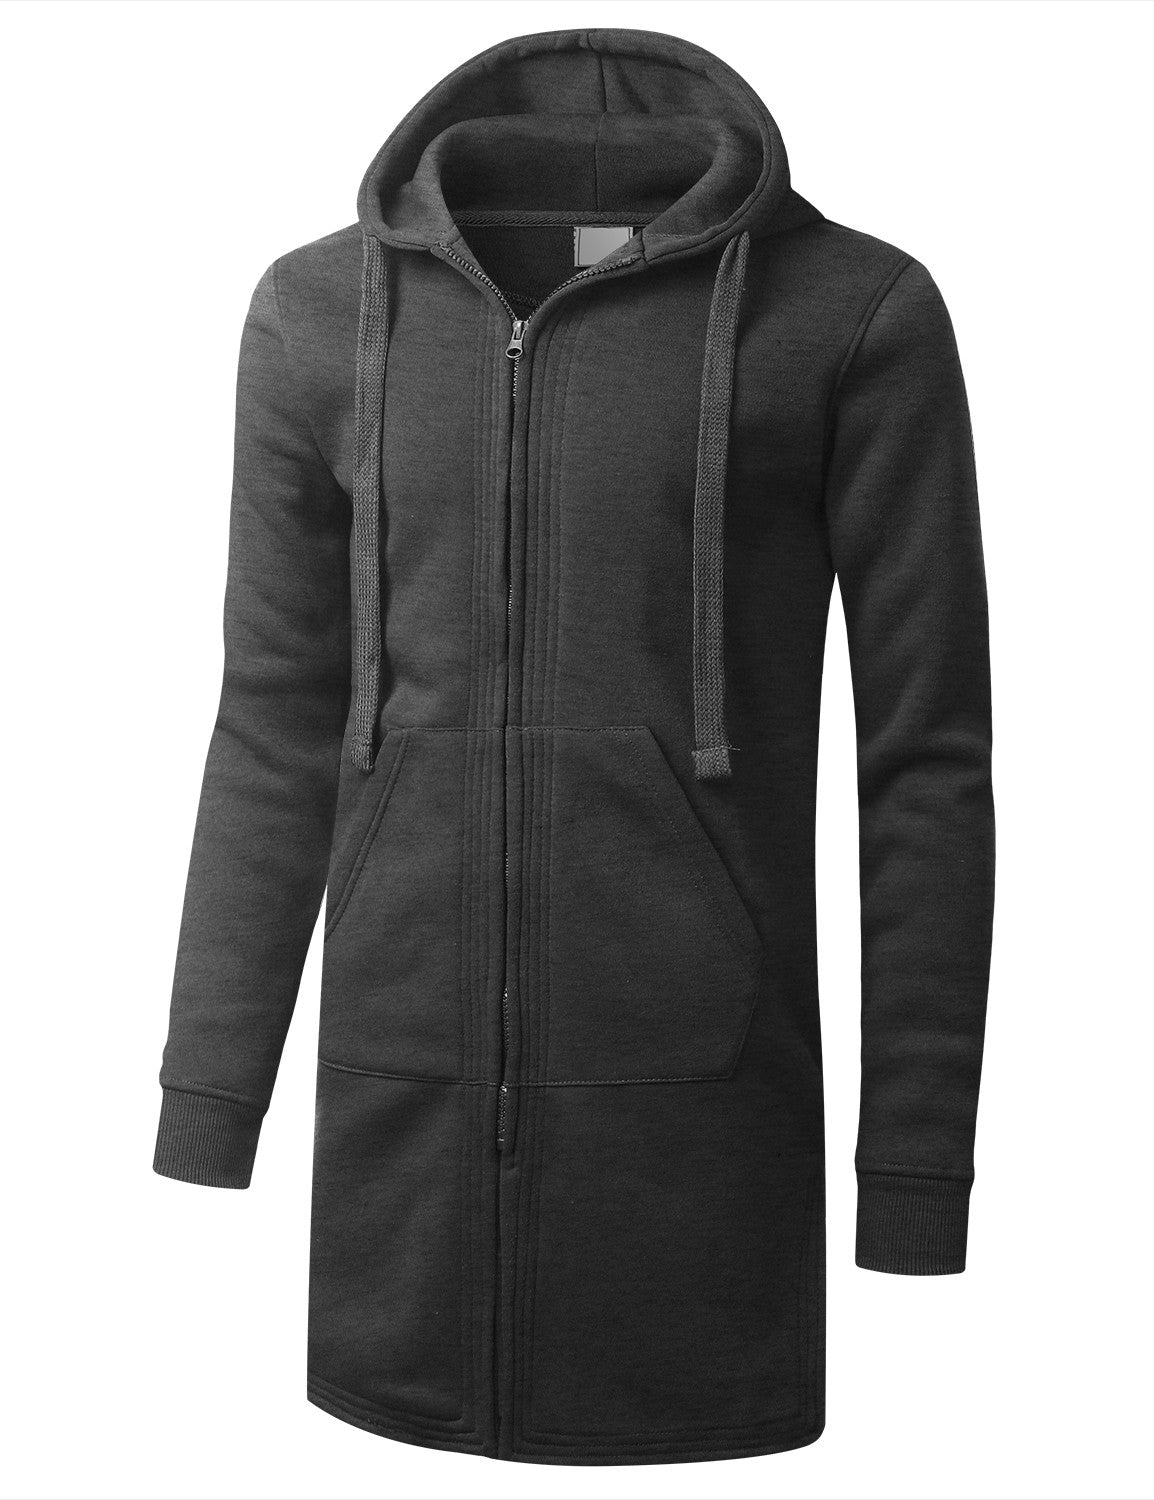 CHARCOAL Zip Down Long Fleece Hoodie Jacket - URBANCREWS